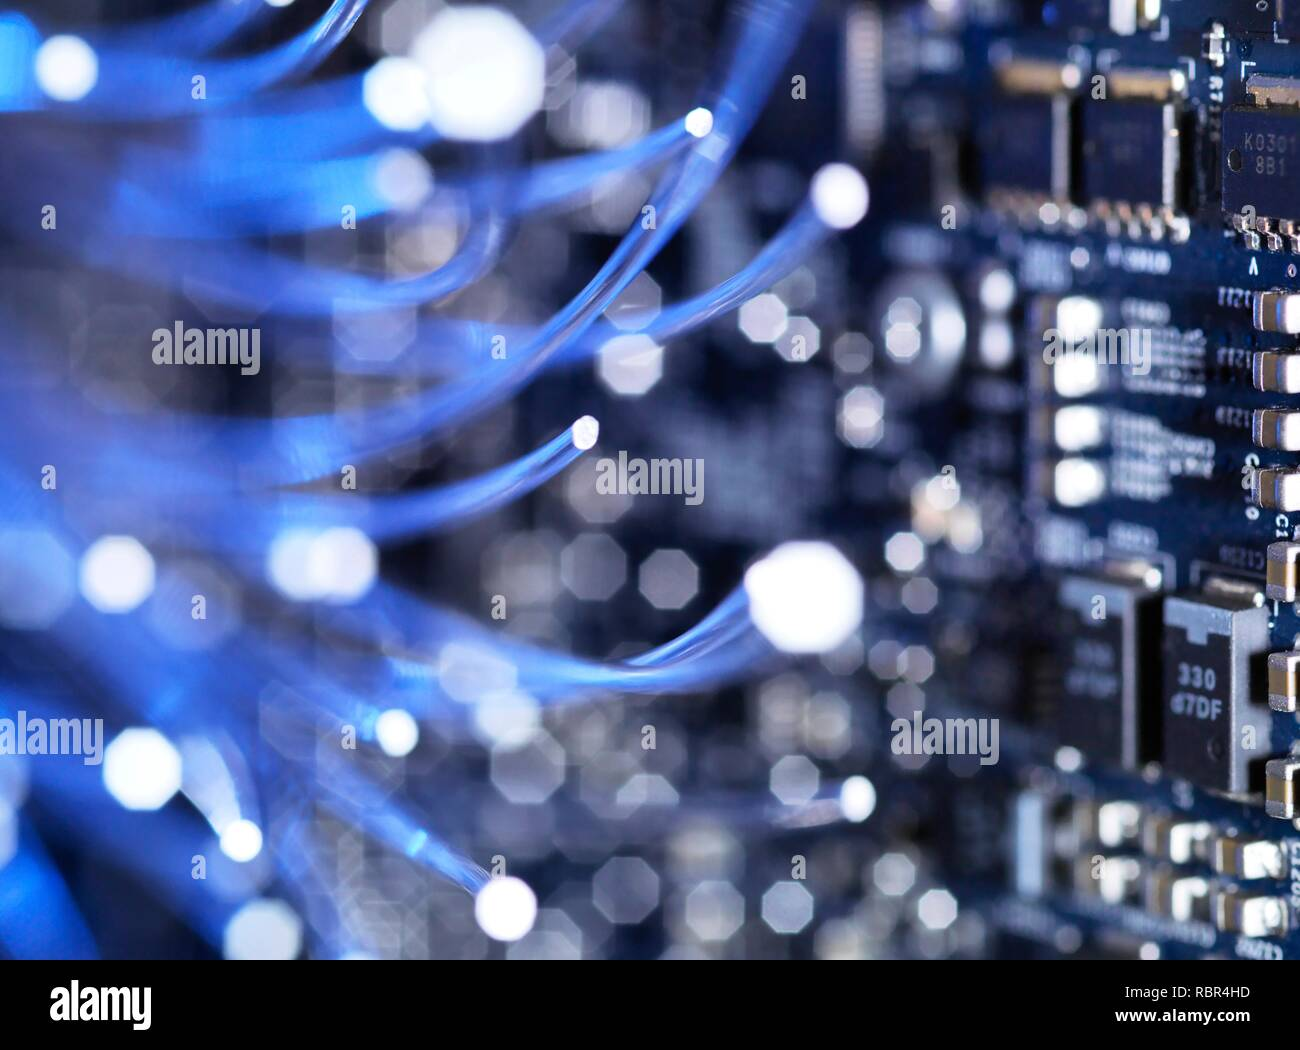 Fibre optics carrying data over electronic circuitry on a laptop computer. - Stock Image